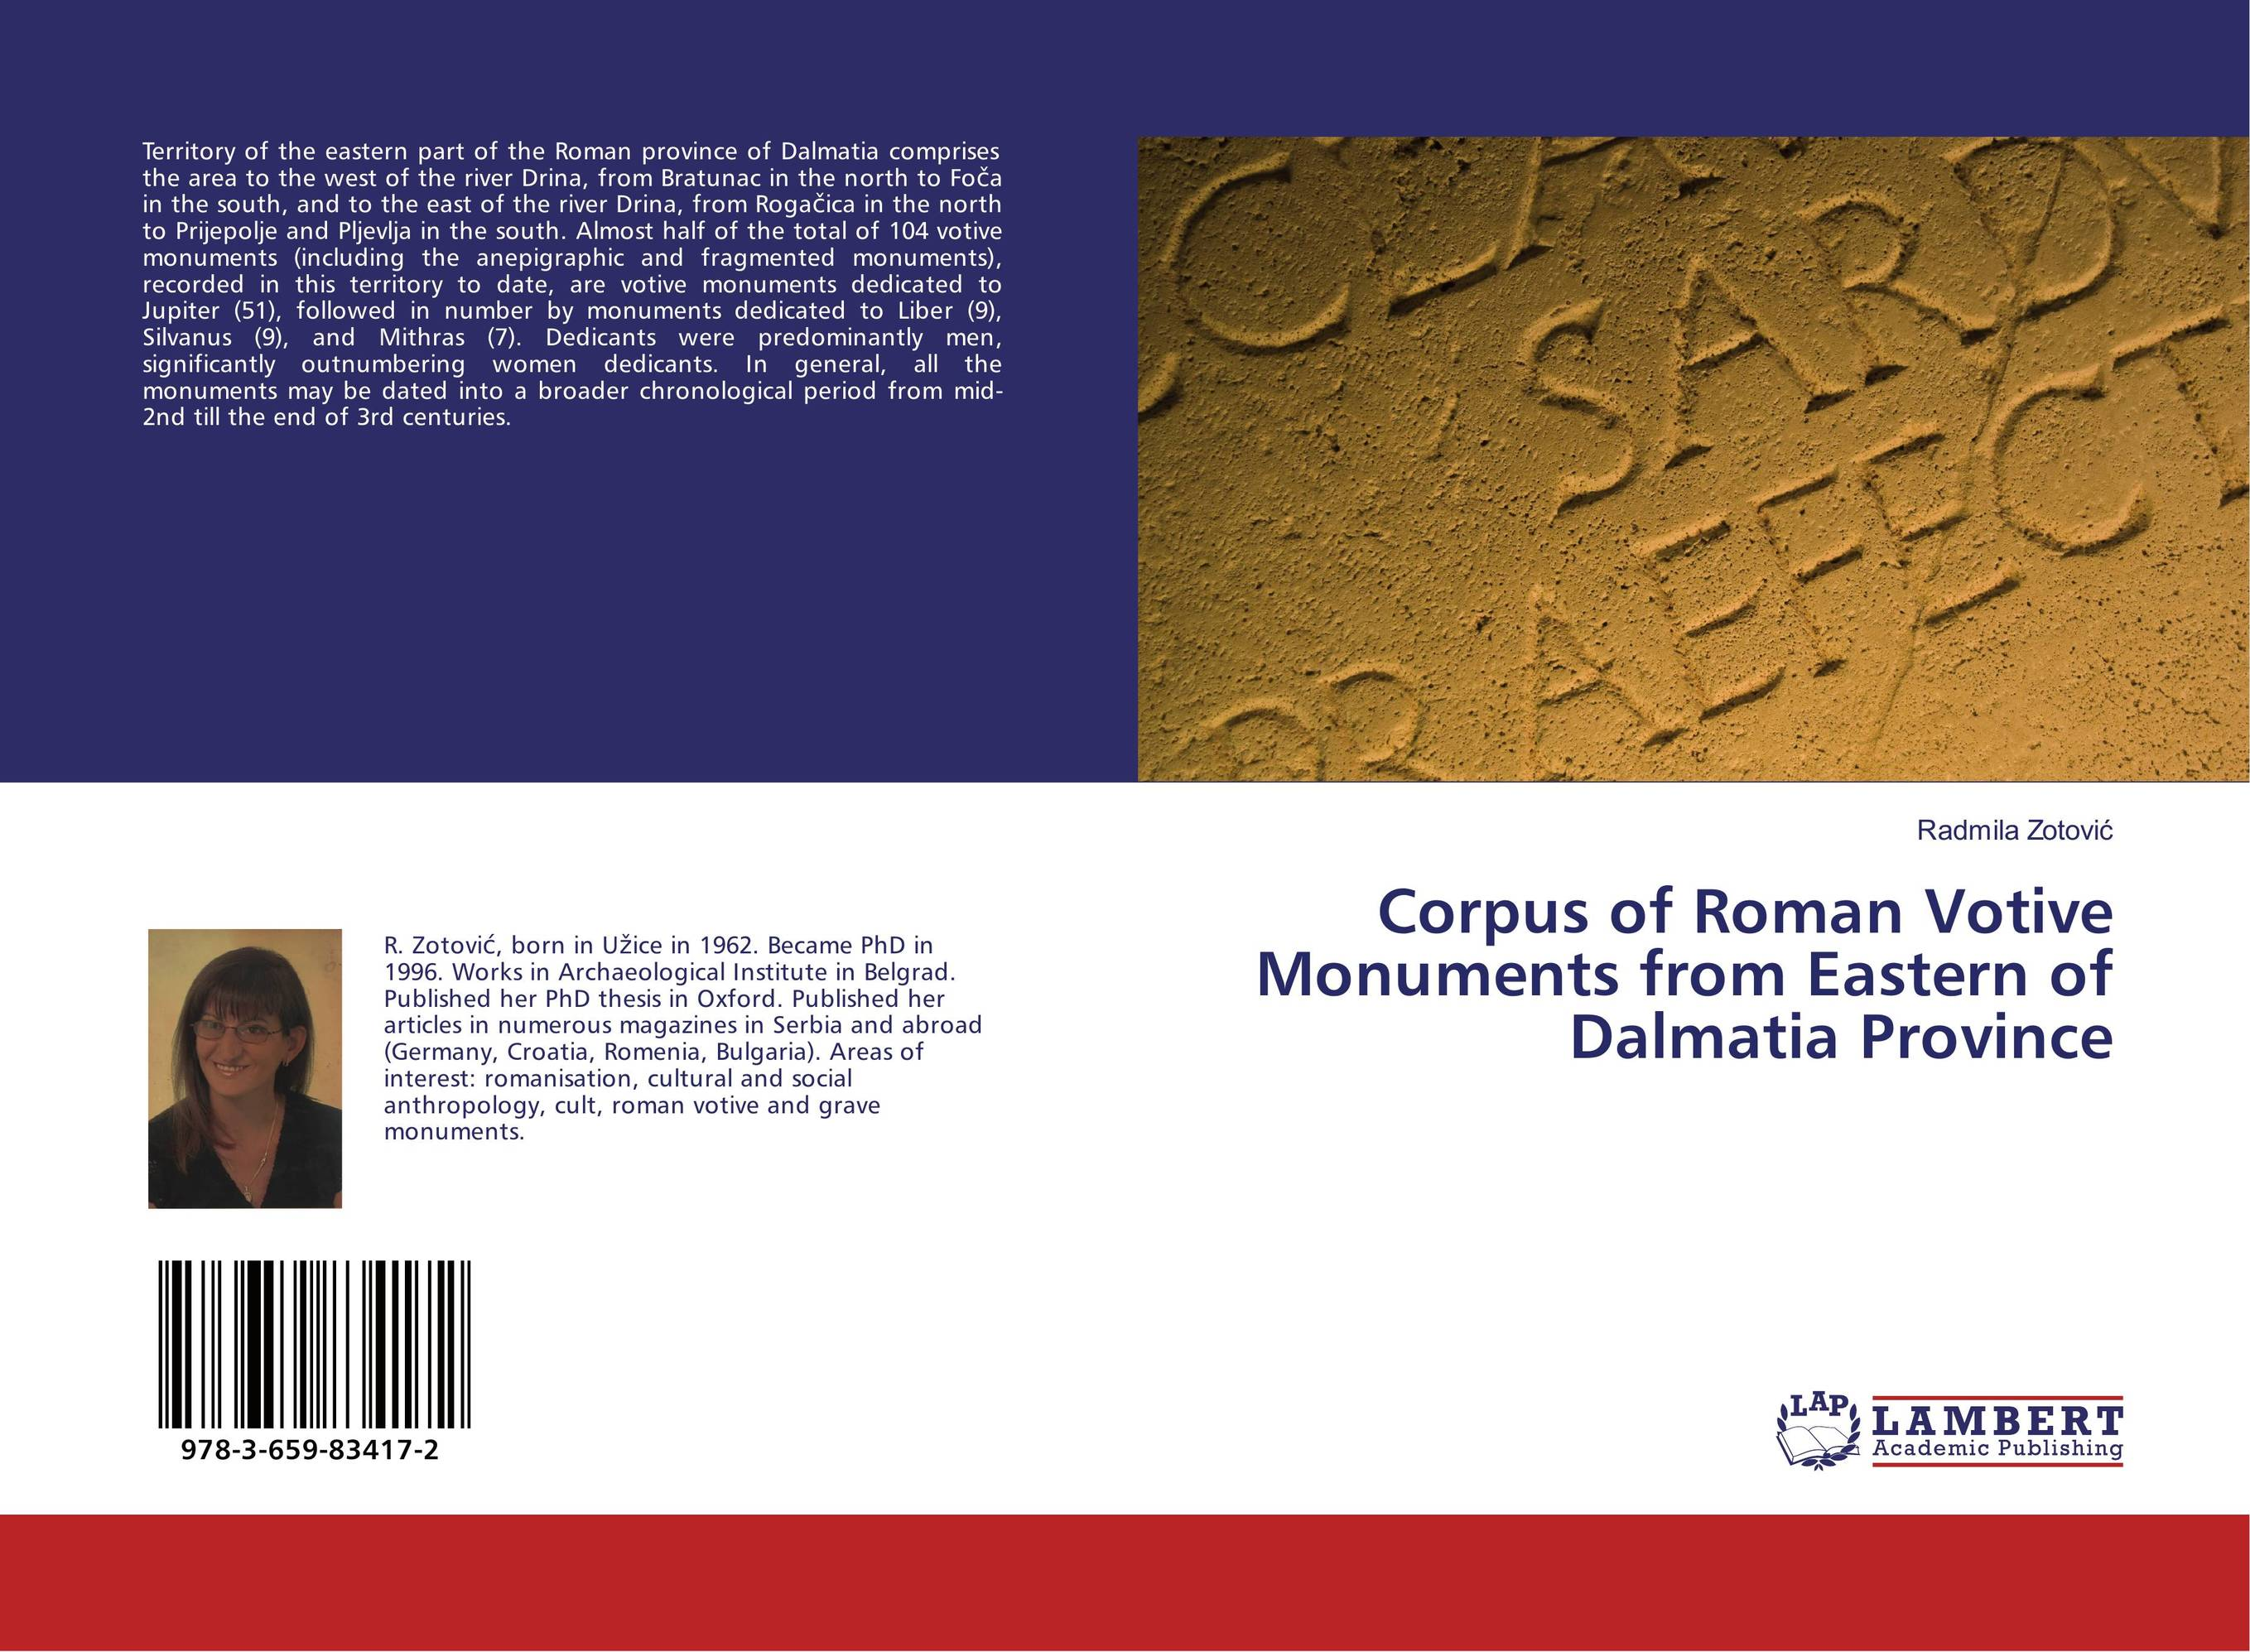 Corpus of Roman Votive Monuments from Eastern of Dalmatia Province north and south